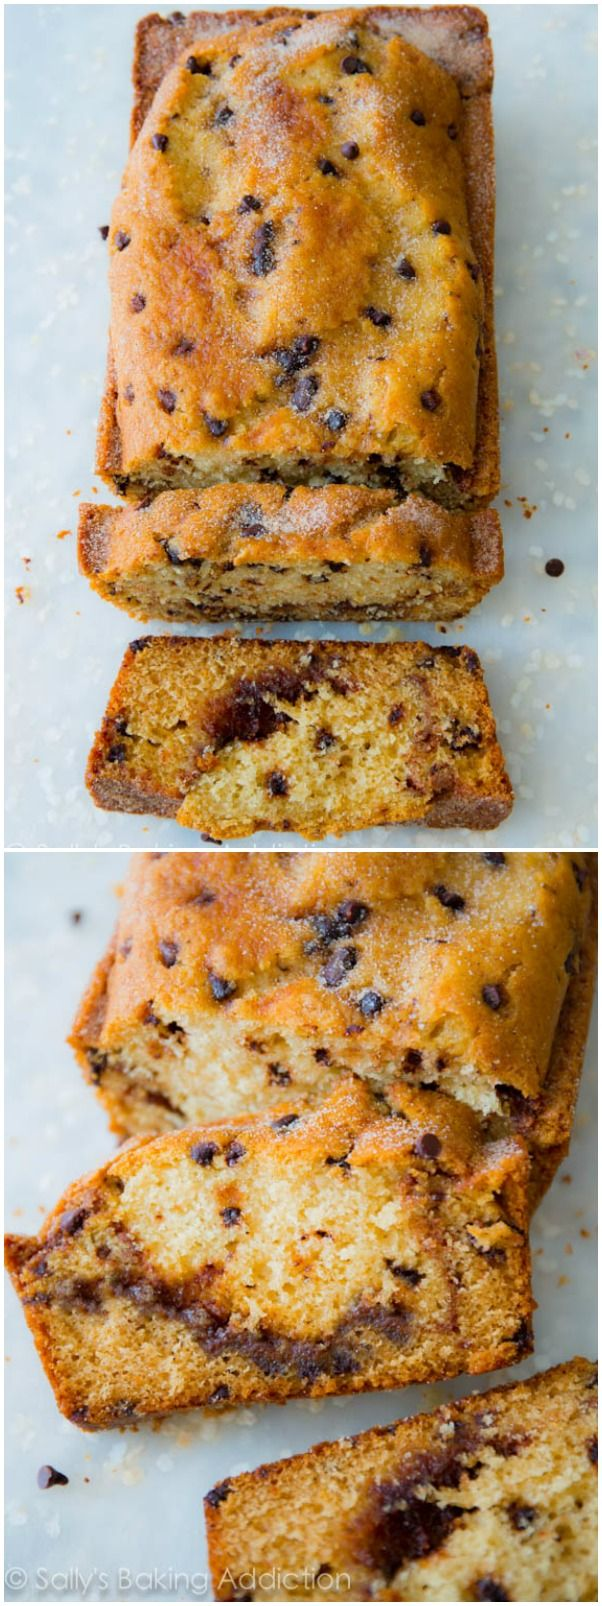 Incredibly-moist quickbread with a deep, dark cinnamon swirl inside. Oh, there's chocolate chips too!